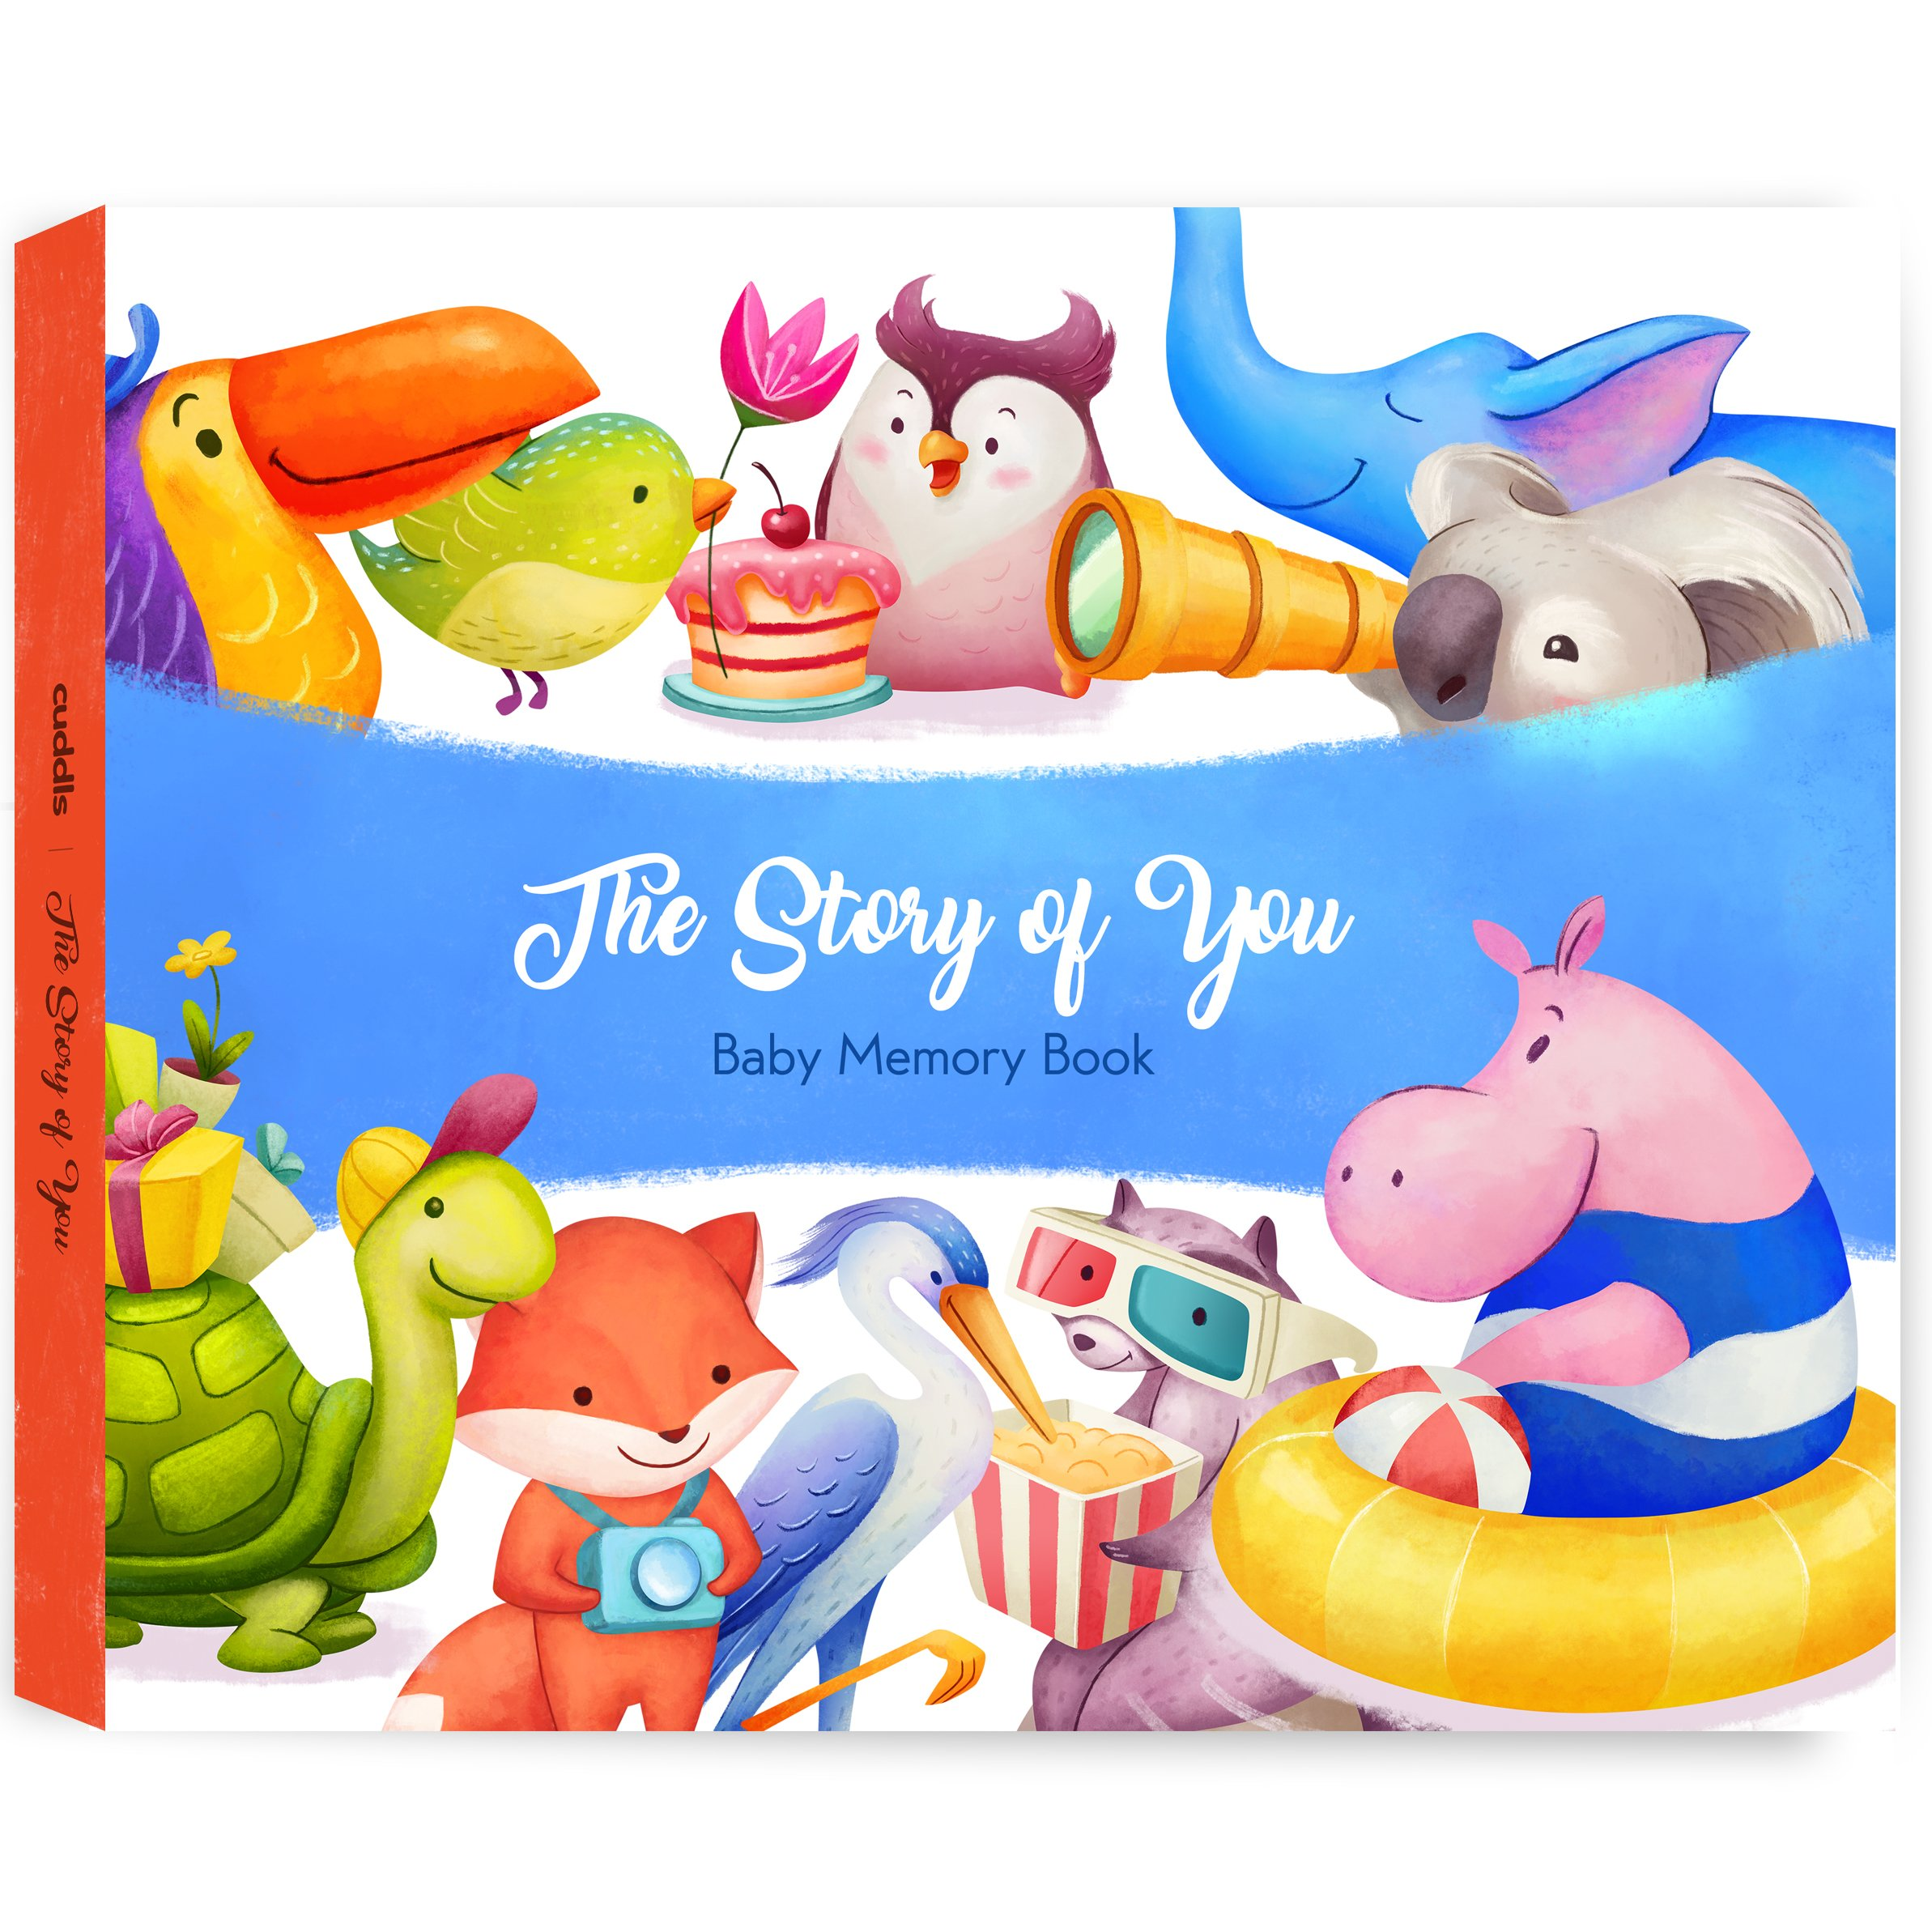 Baby Memory Book Boy and Baby Memory Book for Girls